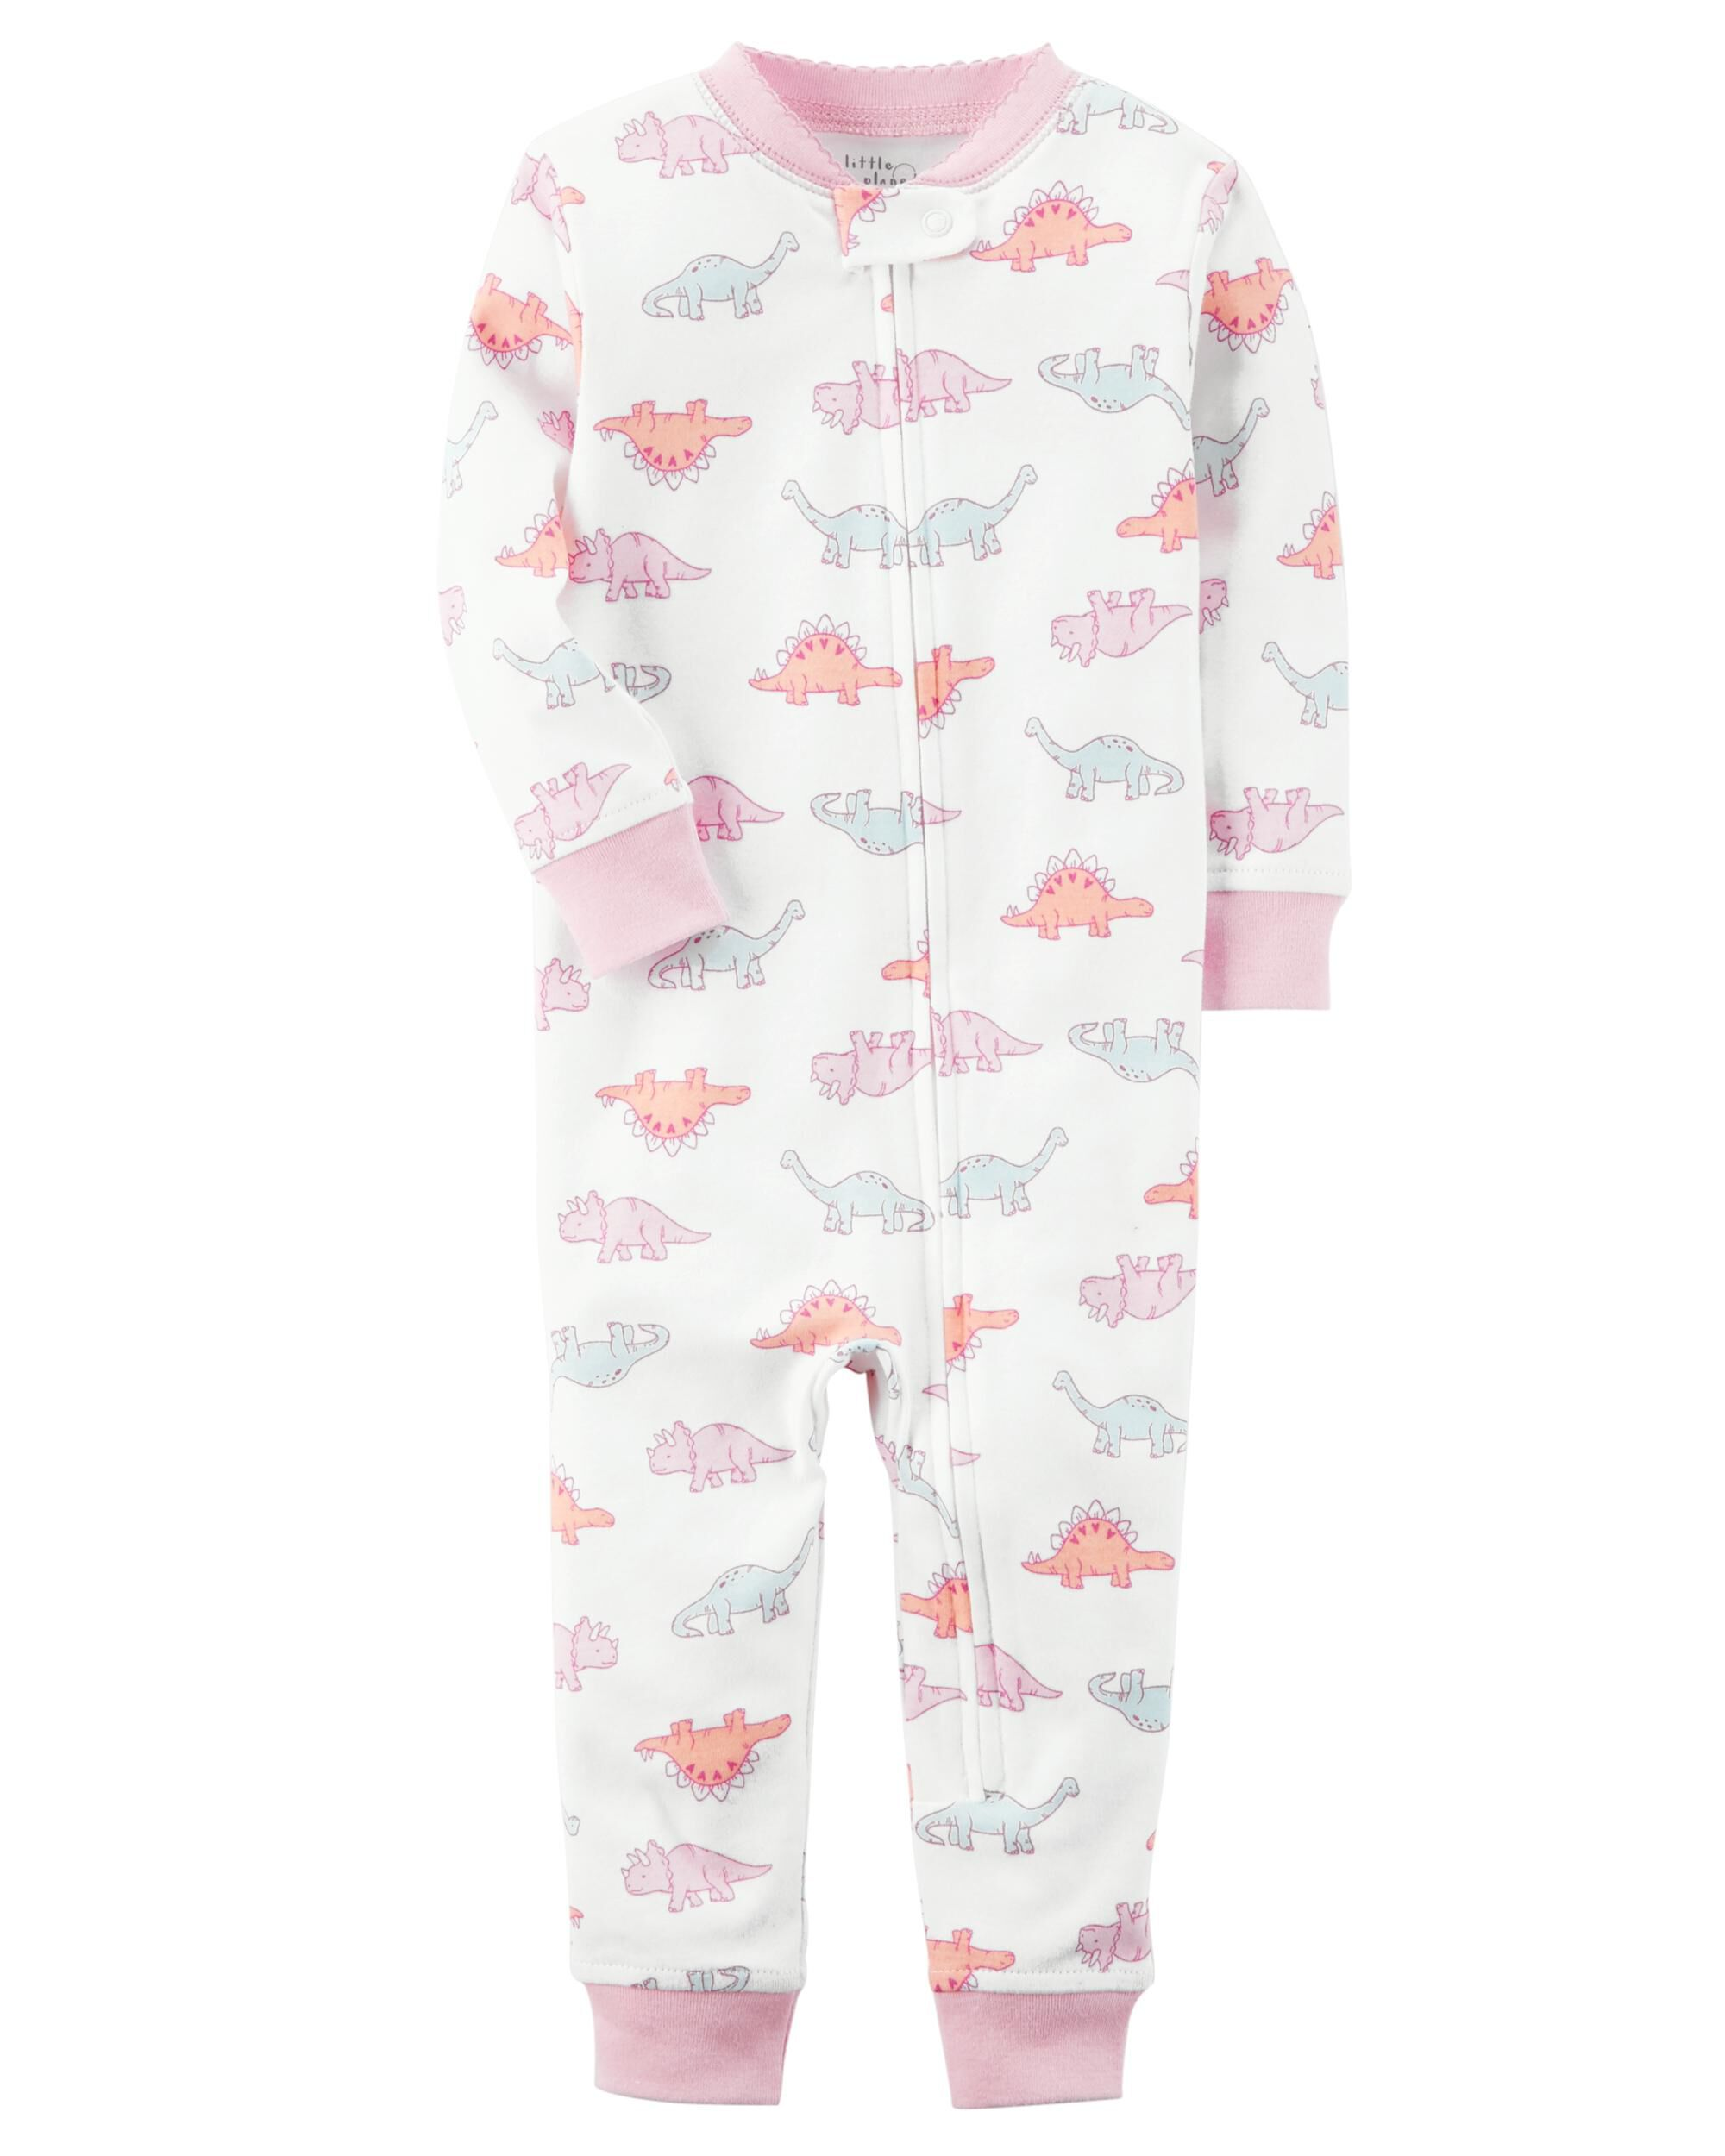 1 Piece Certified Organic Snug Fit Cotton Footless Pjs